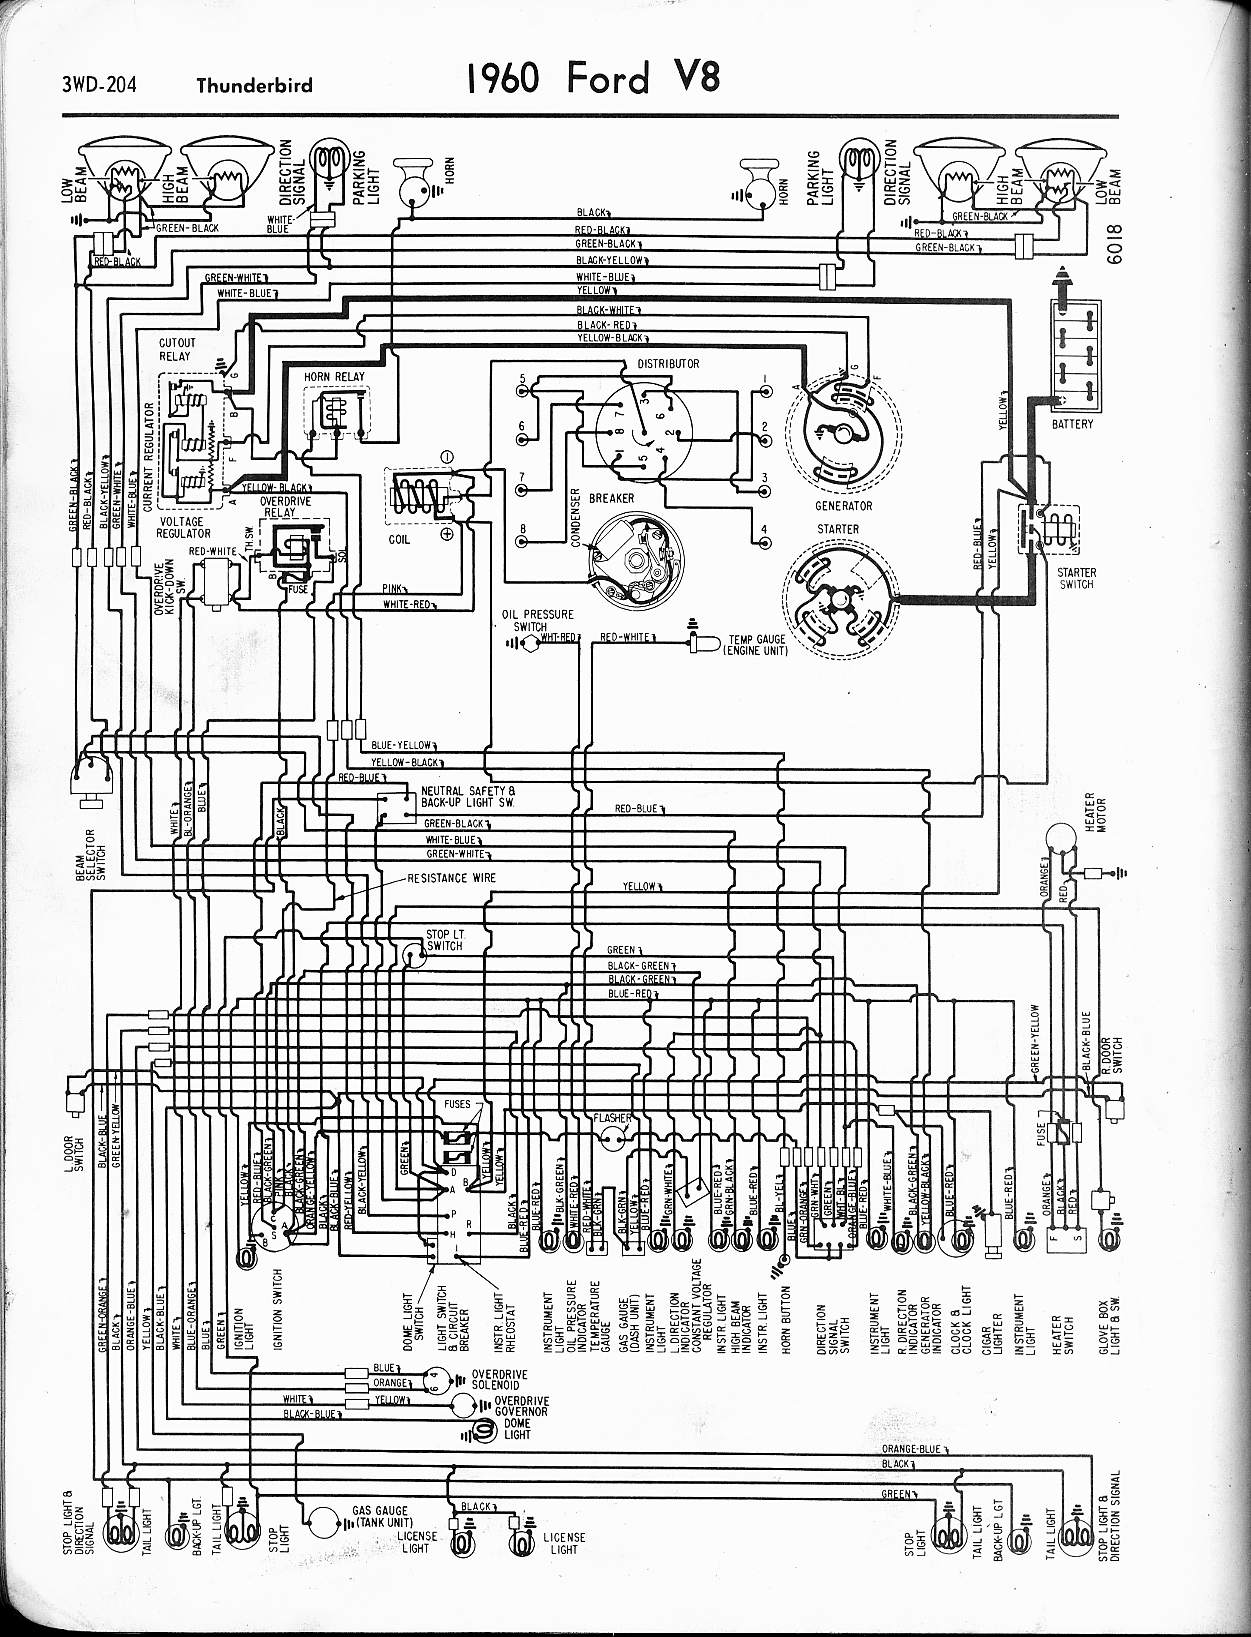 MWire5765 204 57 65 ford wiring diagrams 1965 ford thunderbird wiring harness at edmiracle.co